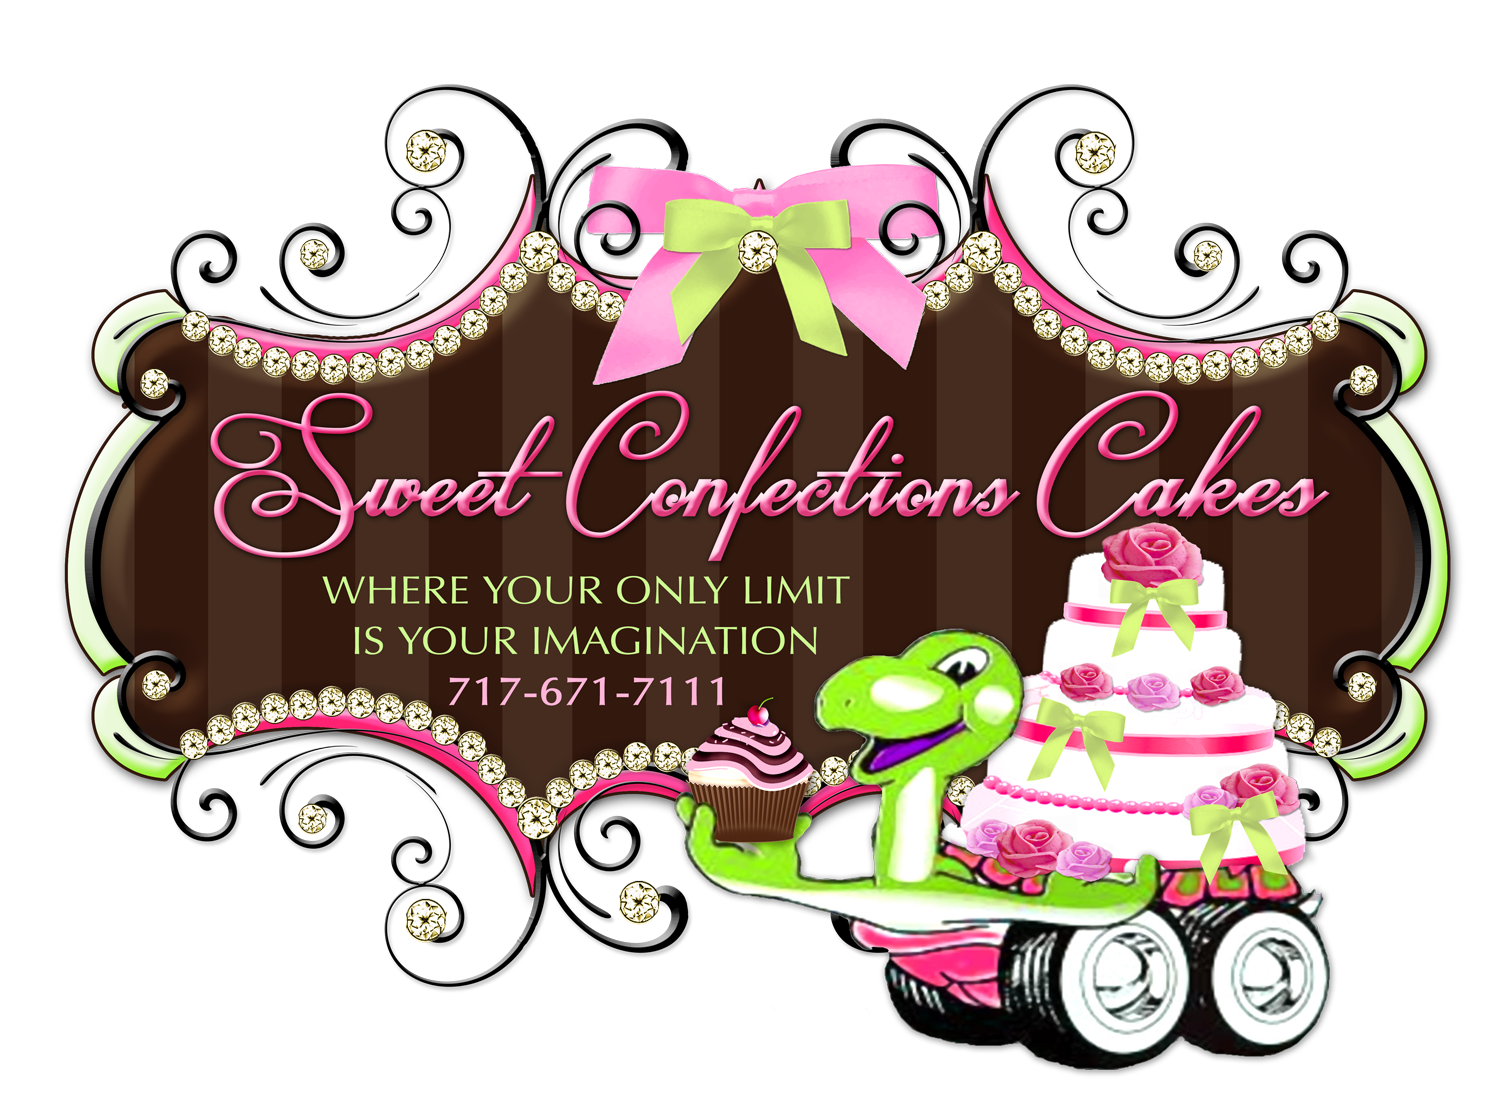 Sweet Confections Cakes Photo